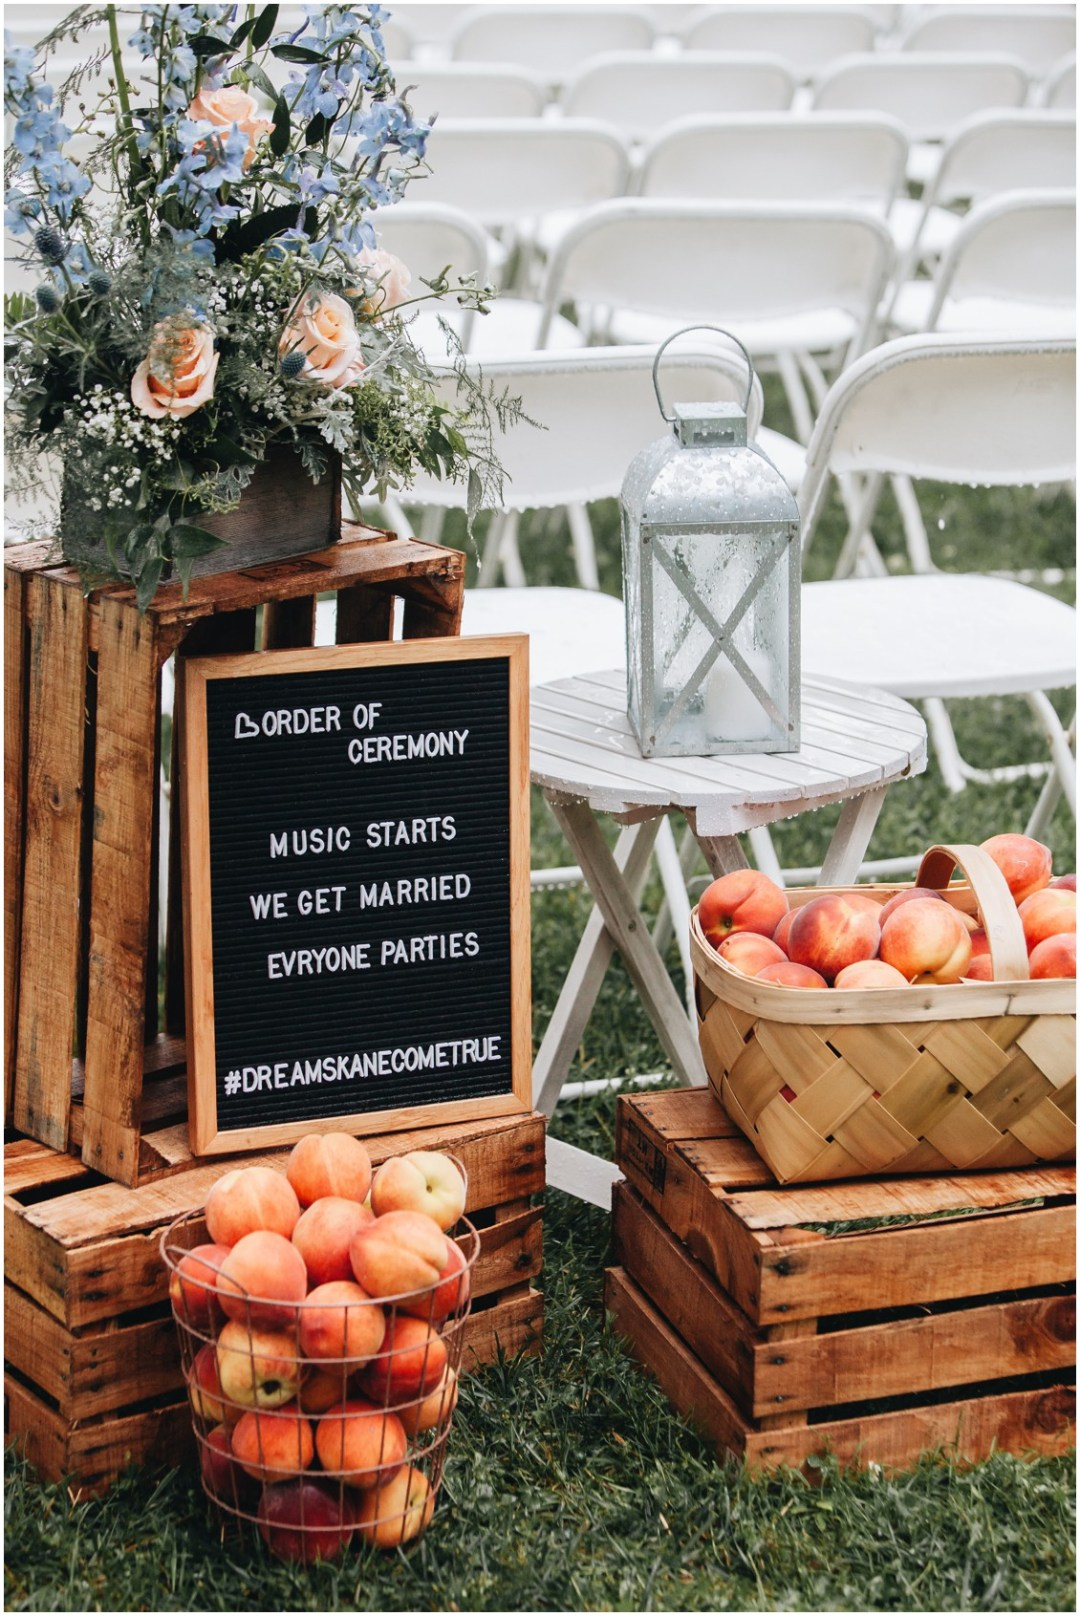 Wedding sign, baskets of peaches, and flowers by Jen-Mor Florist. | My Eastern Shore Wedding |